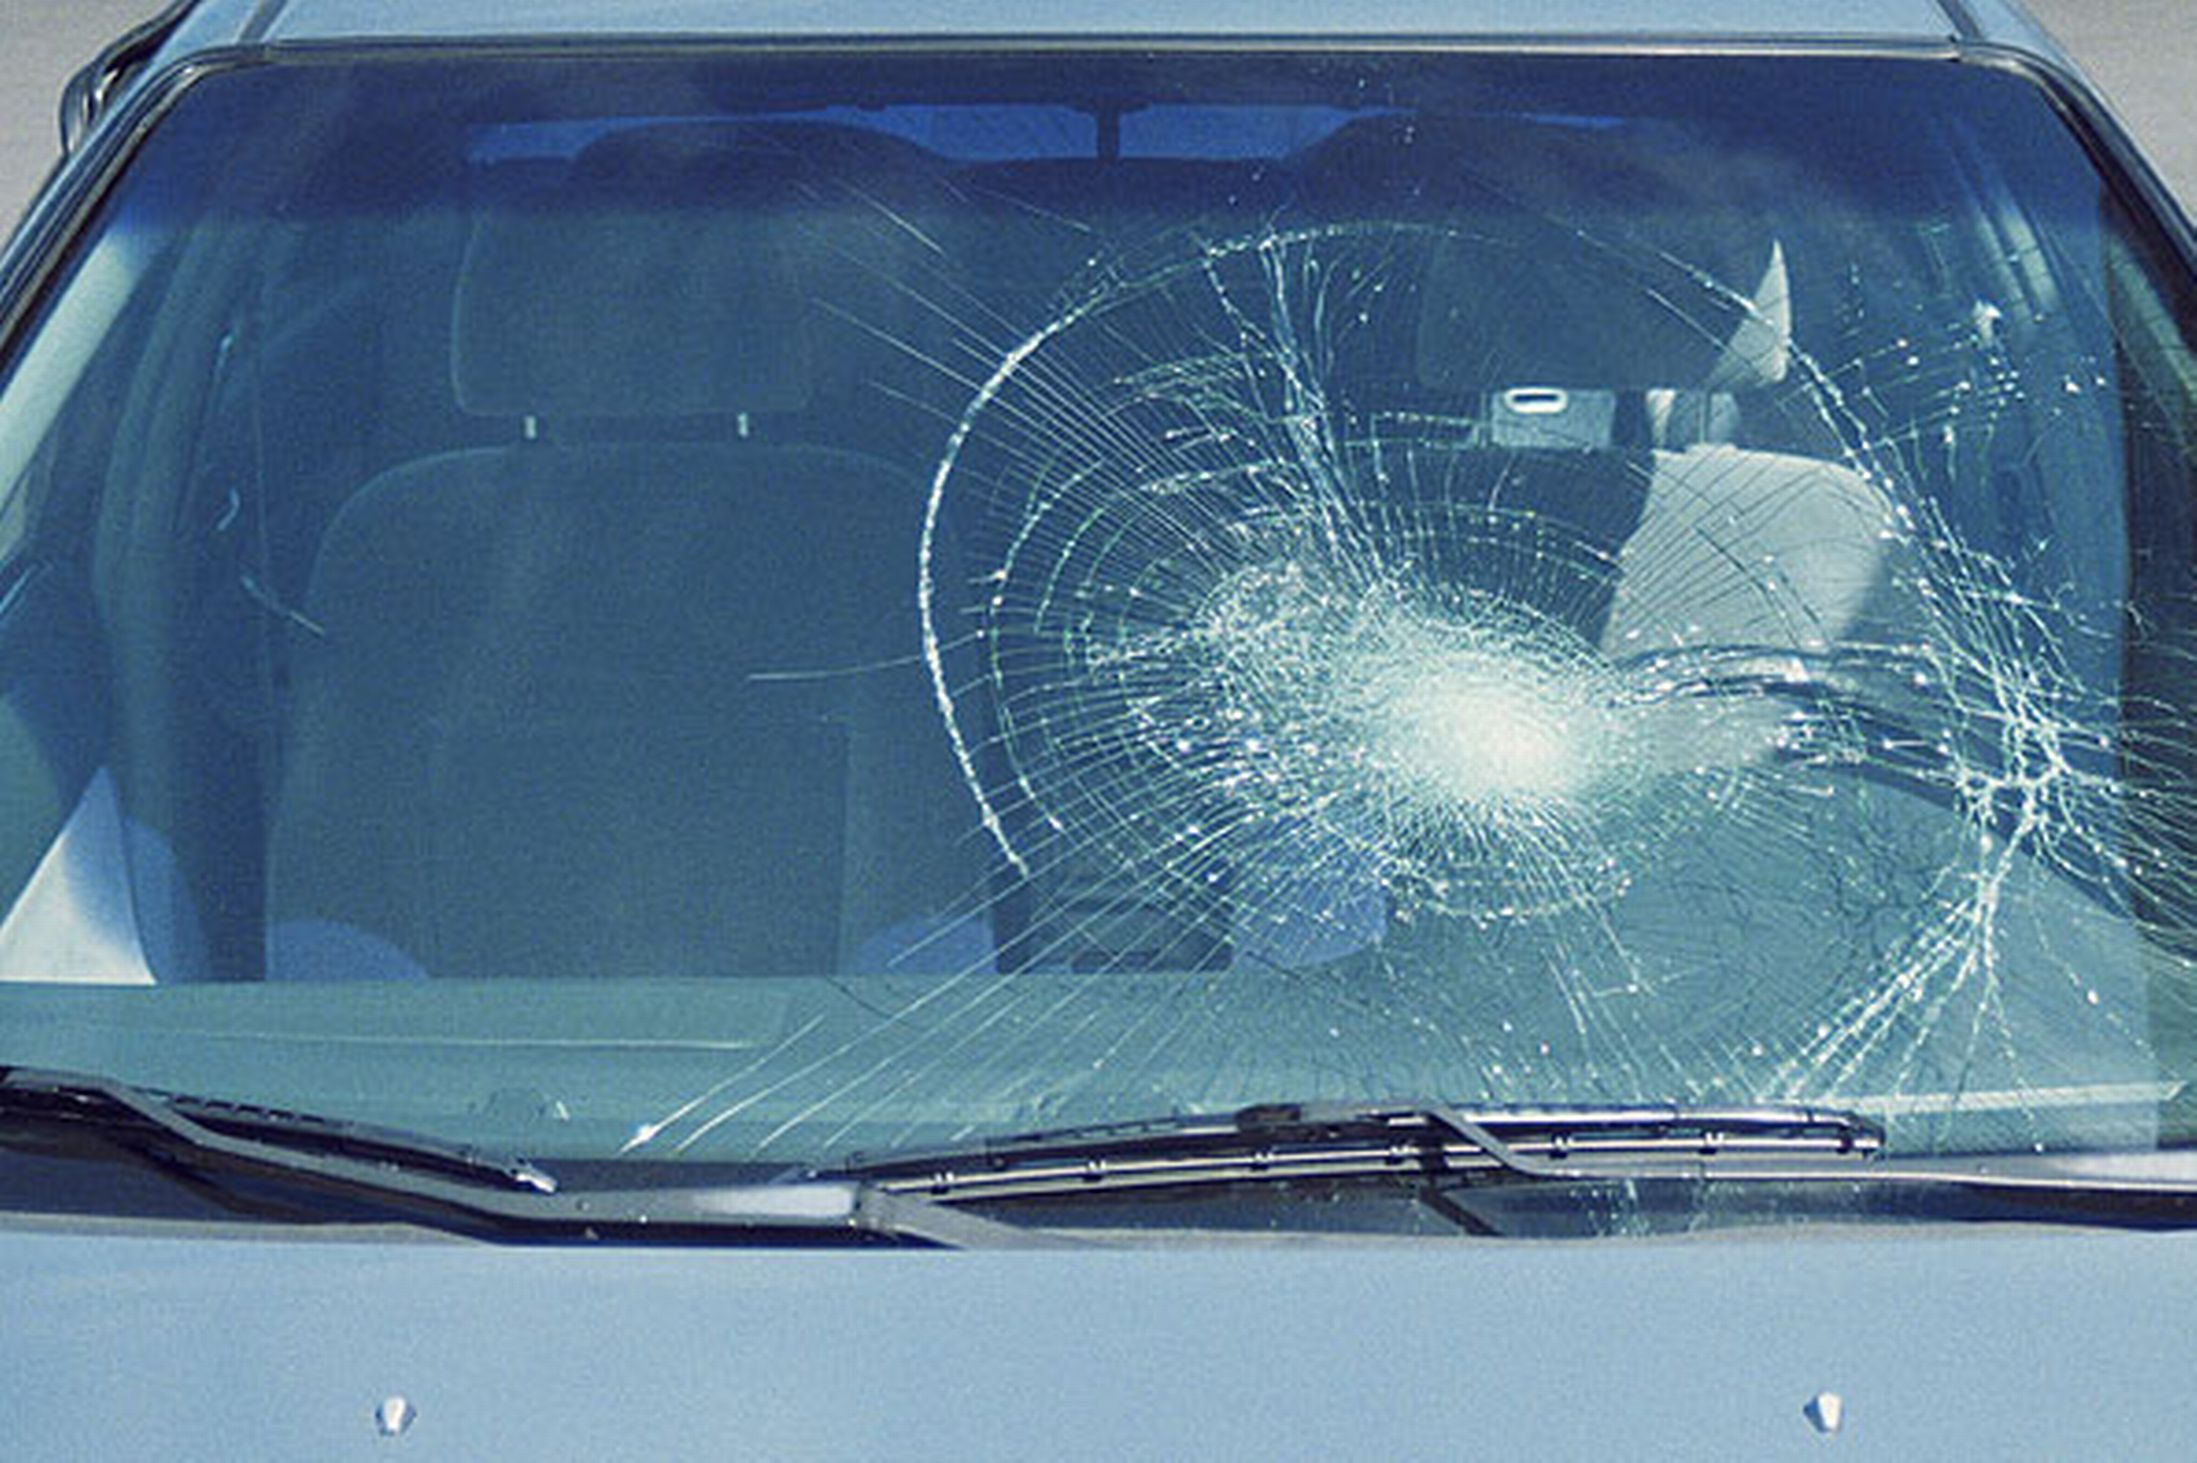 We Prefer To Repair Your Existing Windscreen Before Replacing It With A New One Saving Your Time And Money Windscreenreplacement Wind Screen Perth Midland